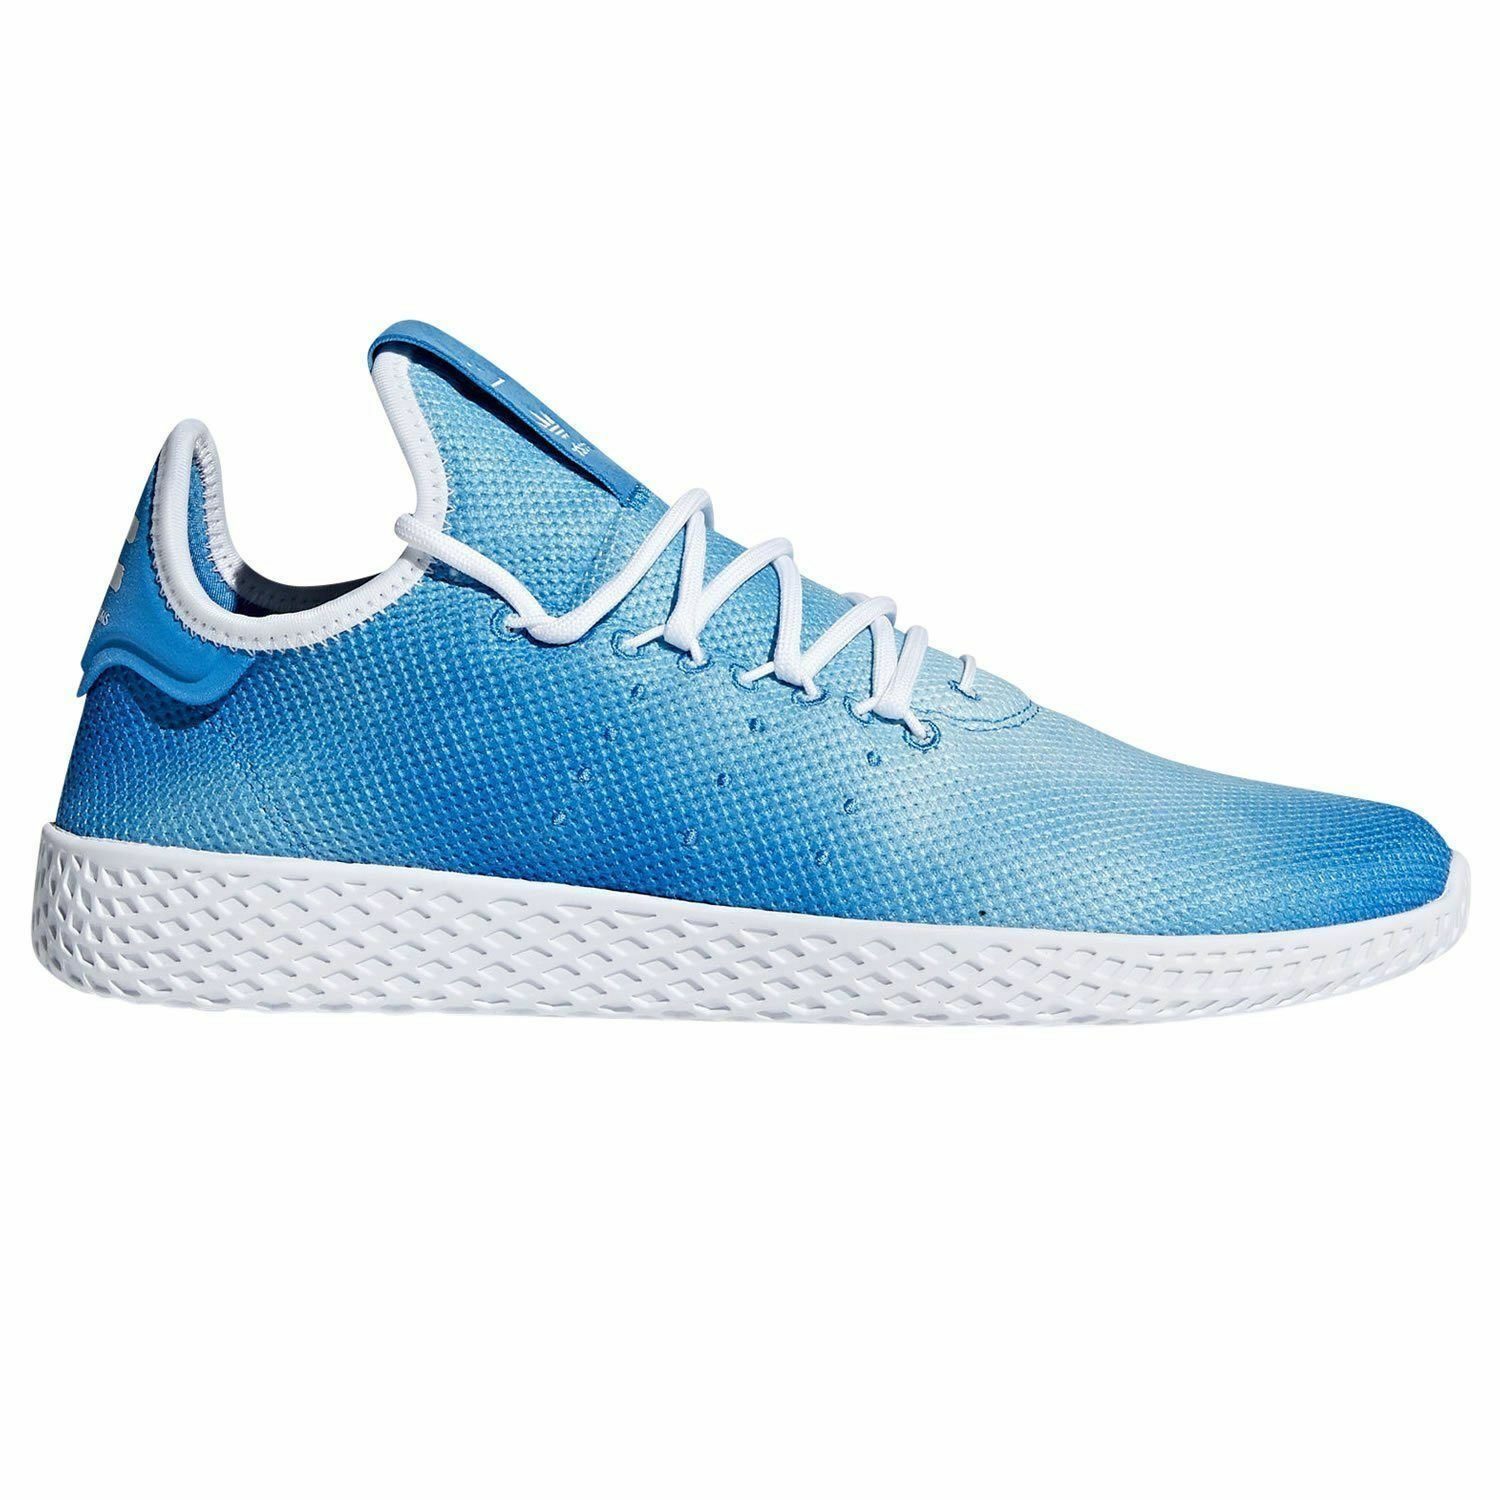 adidas PHARRELL WILLIAMS HU TENNIS Zapatos Azul NEW TRAINERS SNEAKERS Zapatos Hombre'S NEW Azul 6e6885